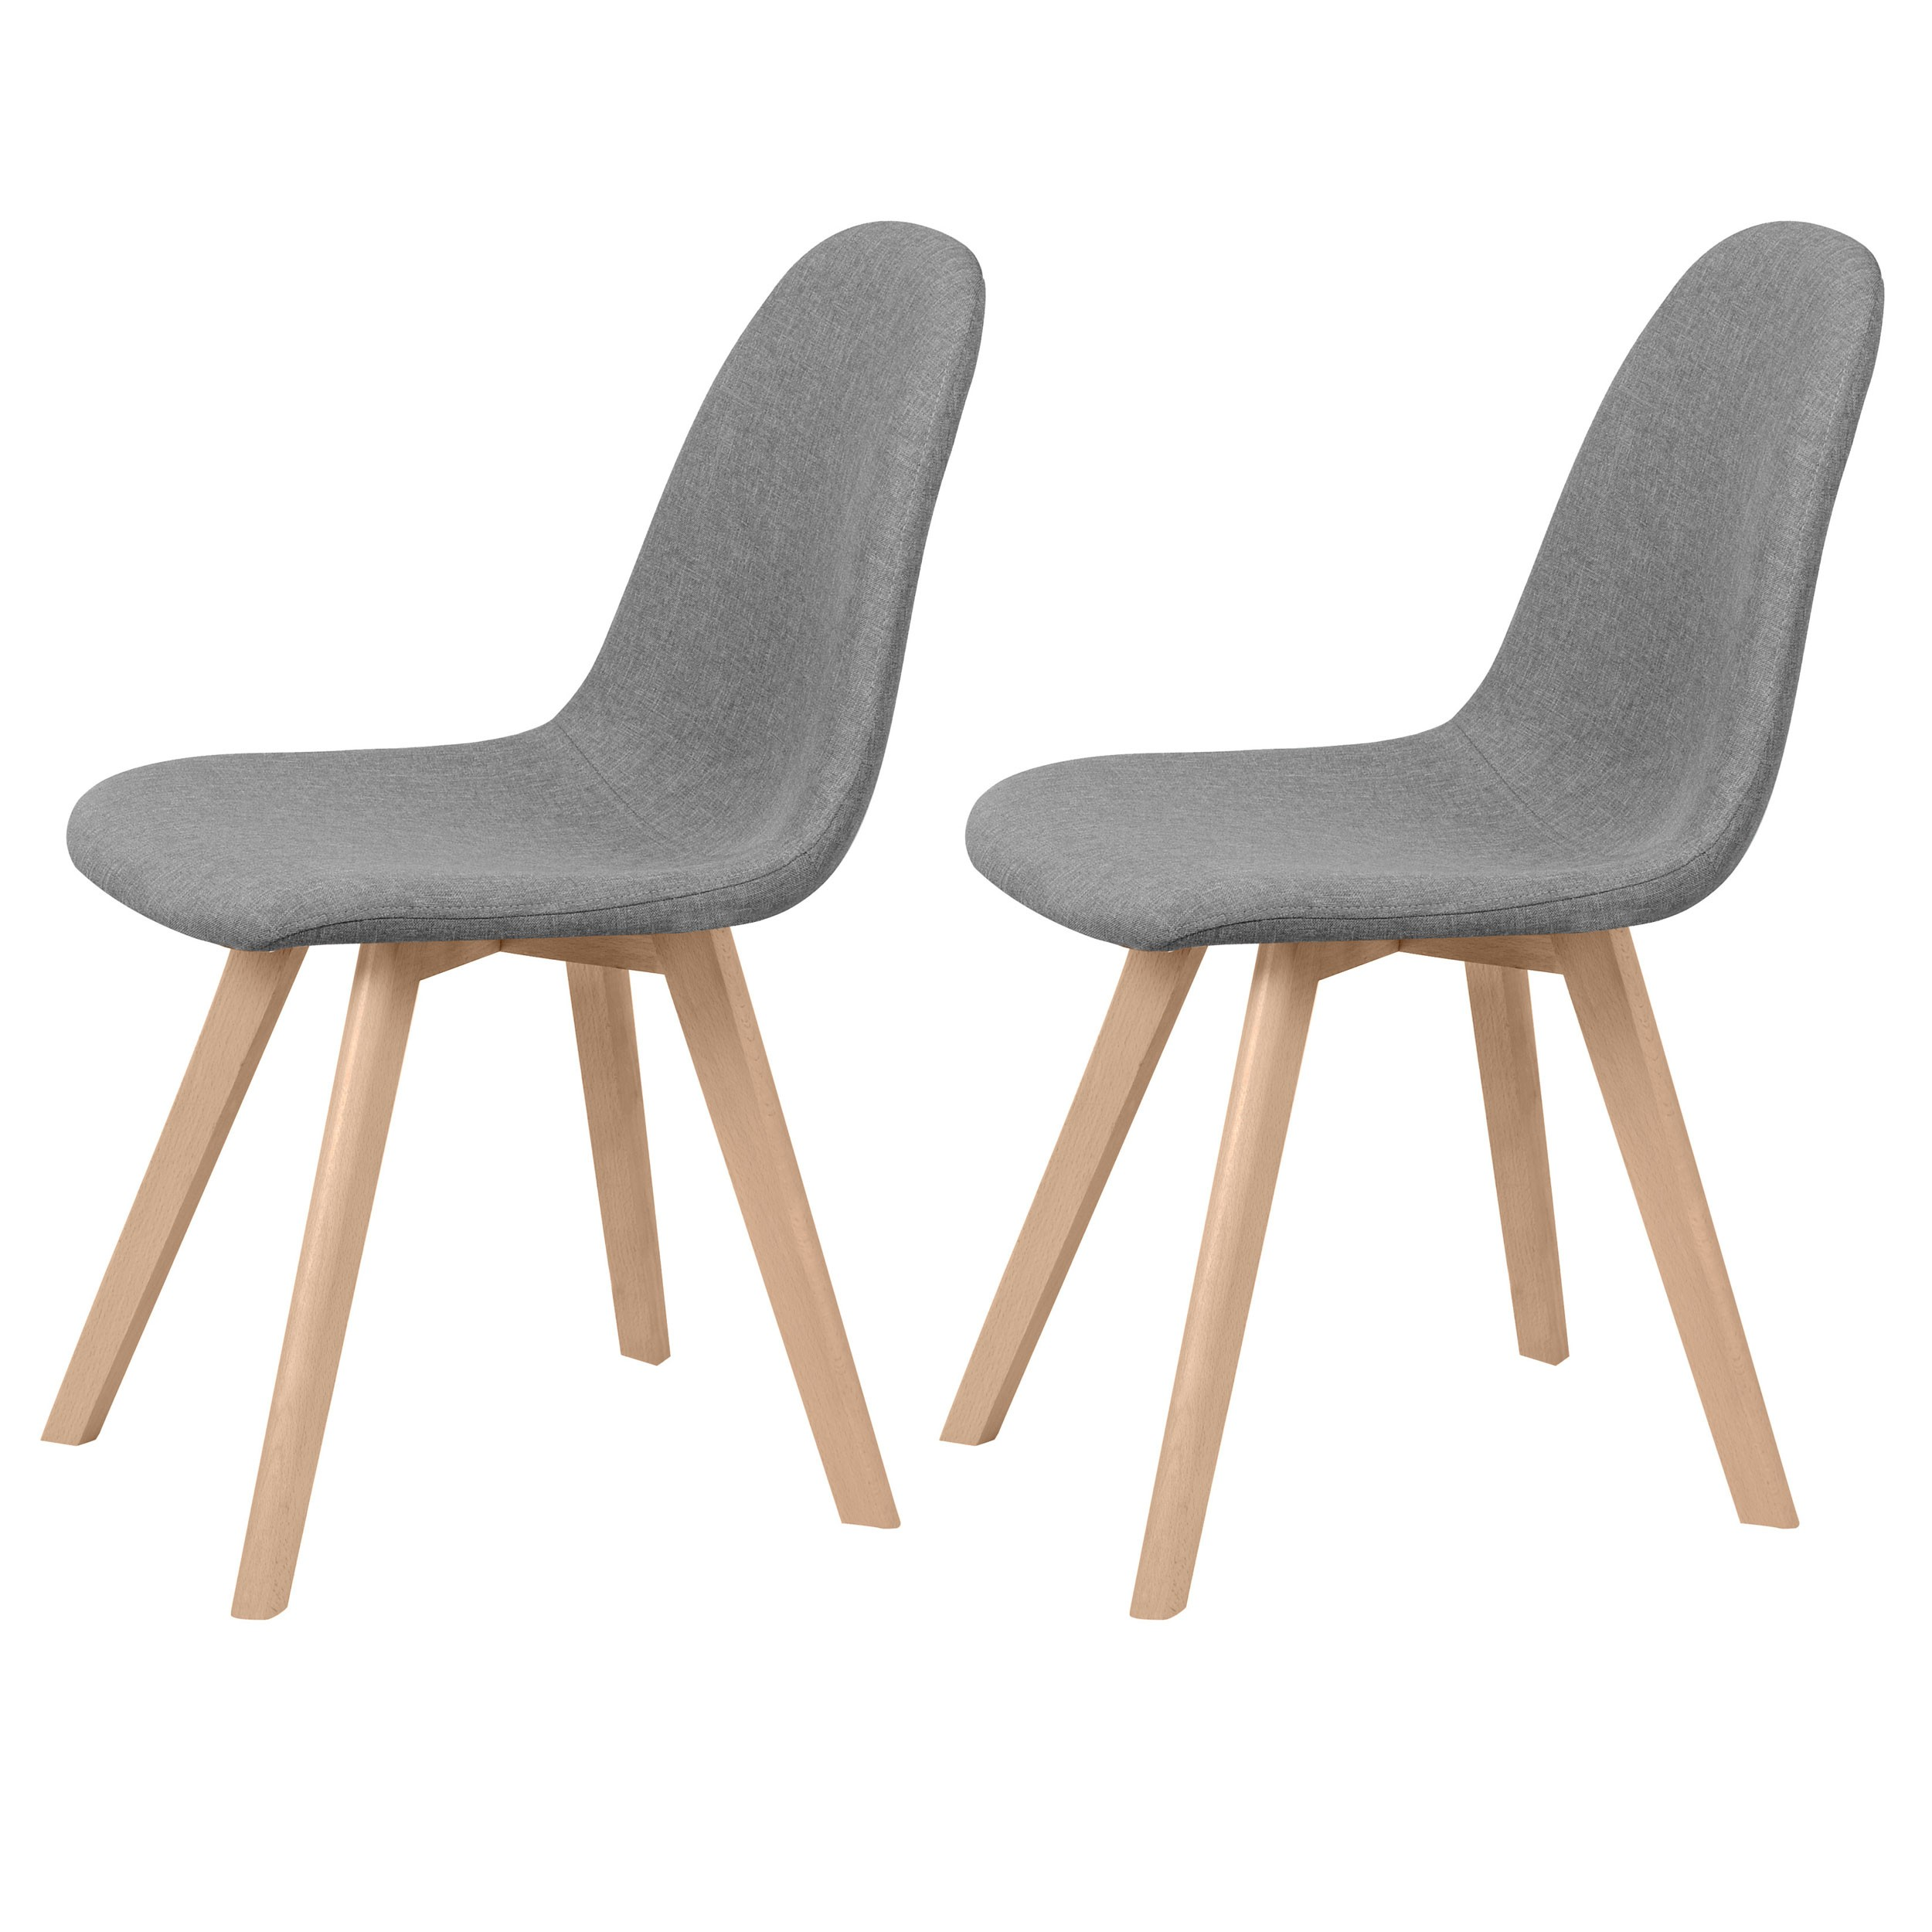 acheter chaises grises scandinaves - Chaise Scandinave Grise